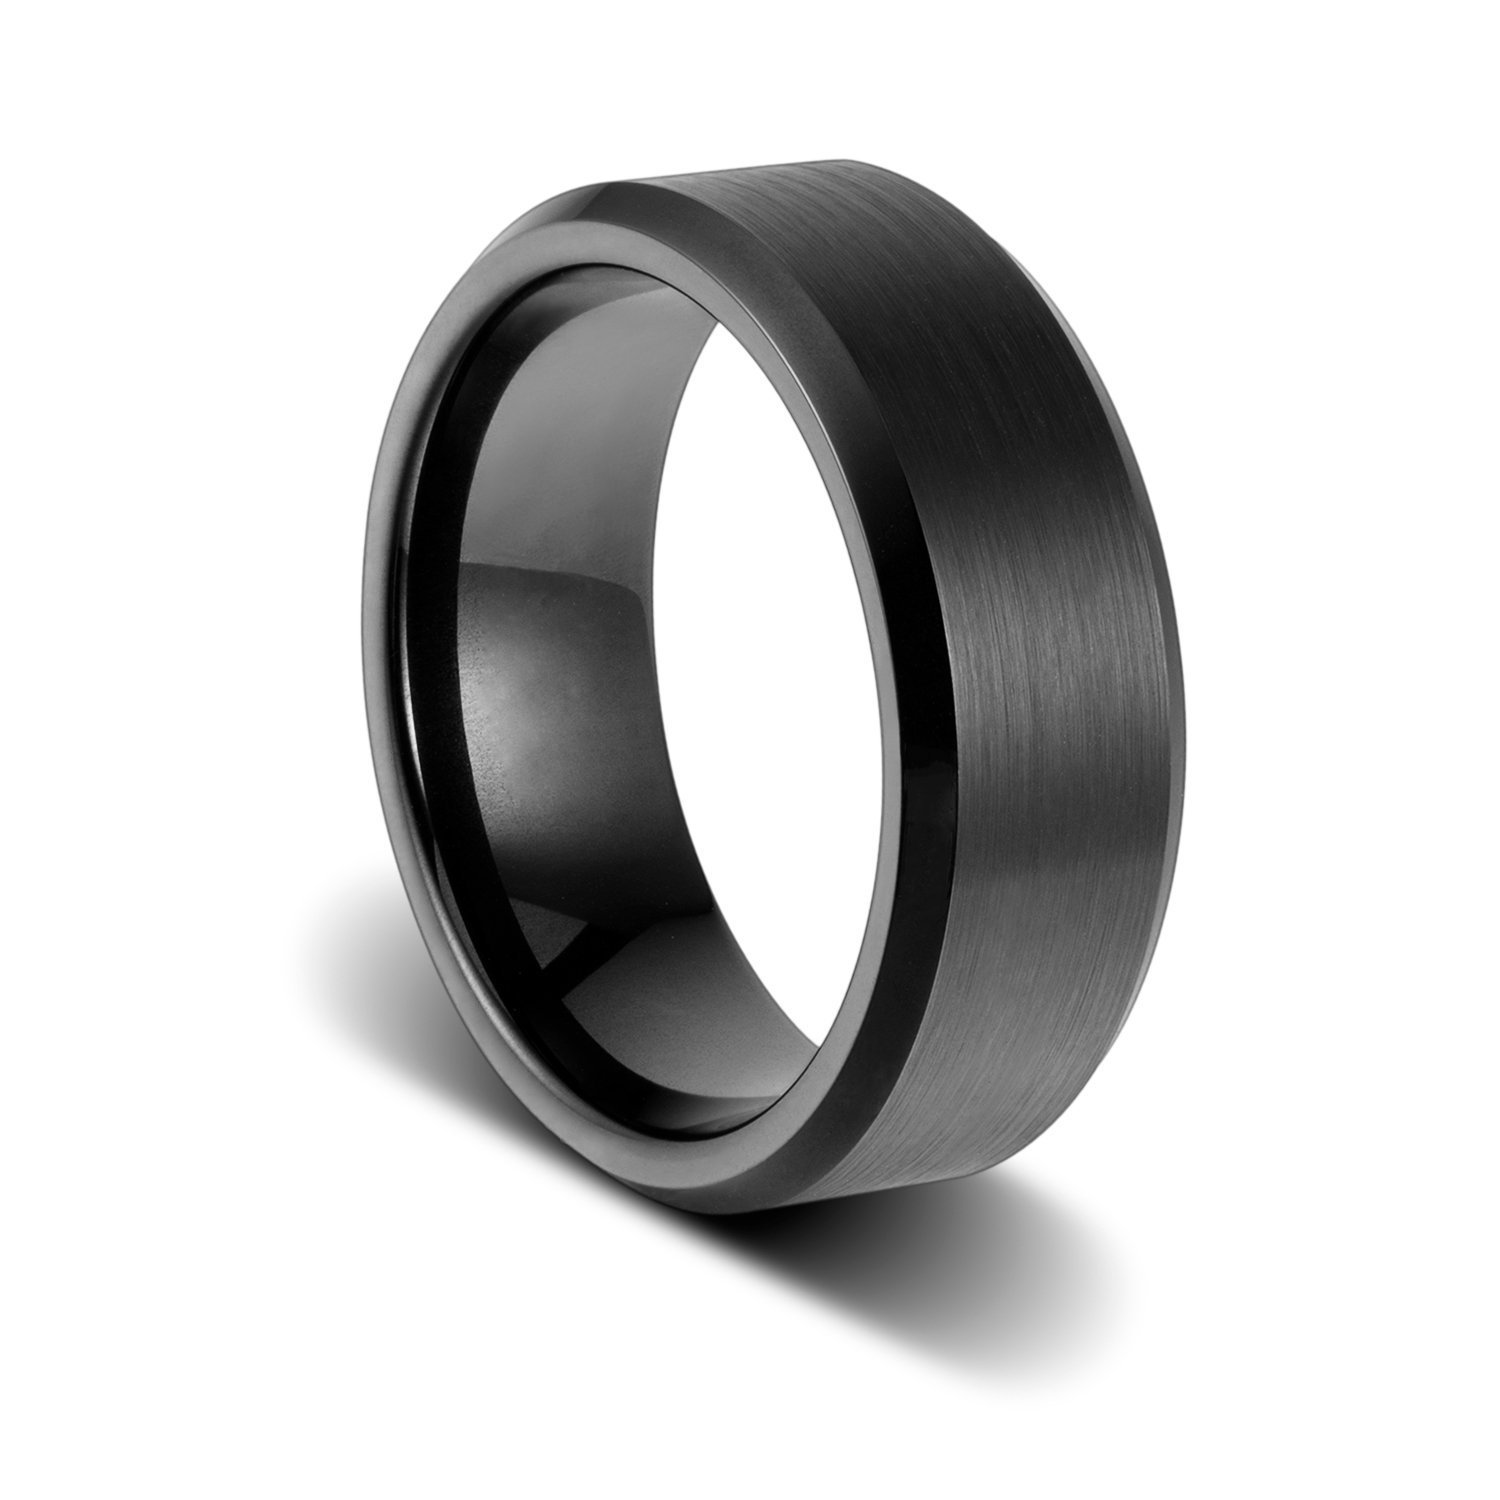 TUSEN JEWELRY Engraving Personalized Custom Wedding Band Engagement Black Tungsten Ring 8mm Size:10